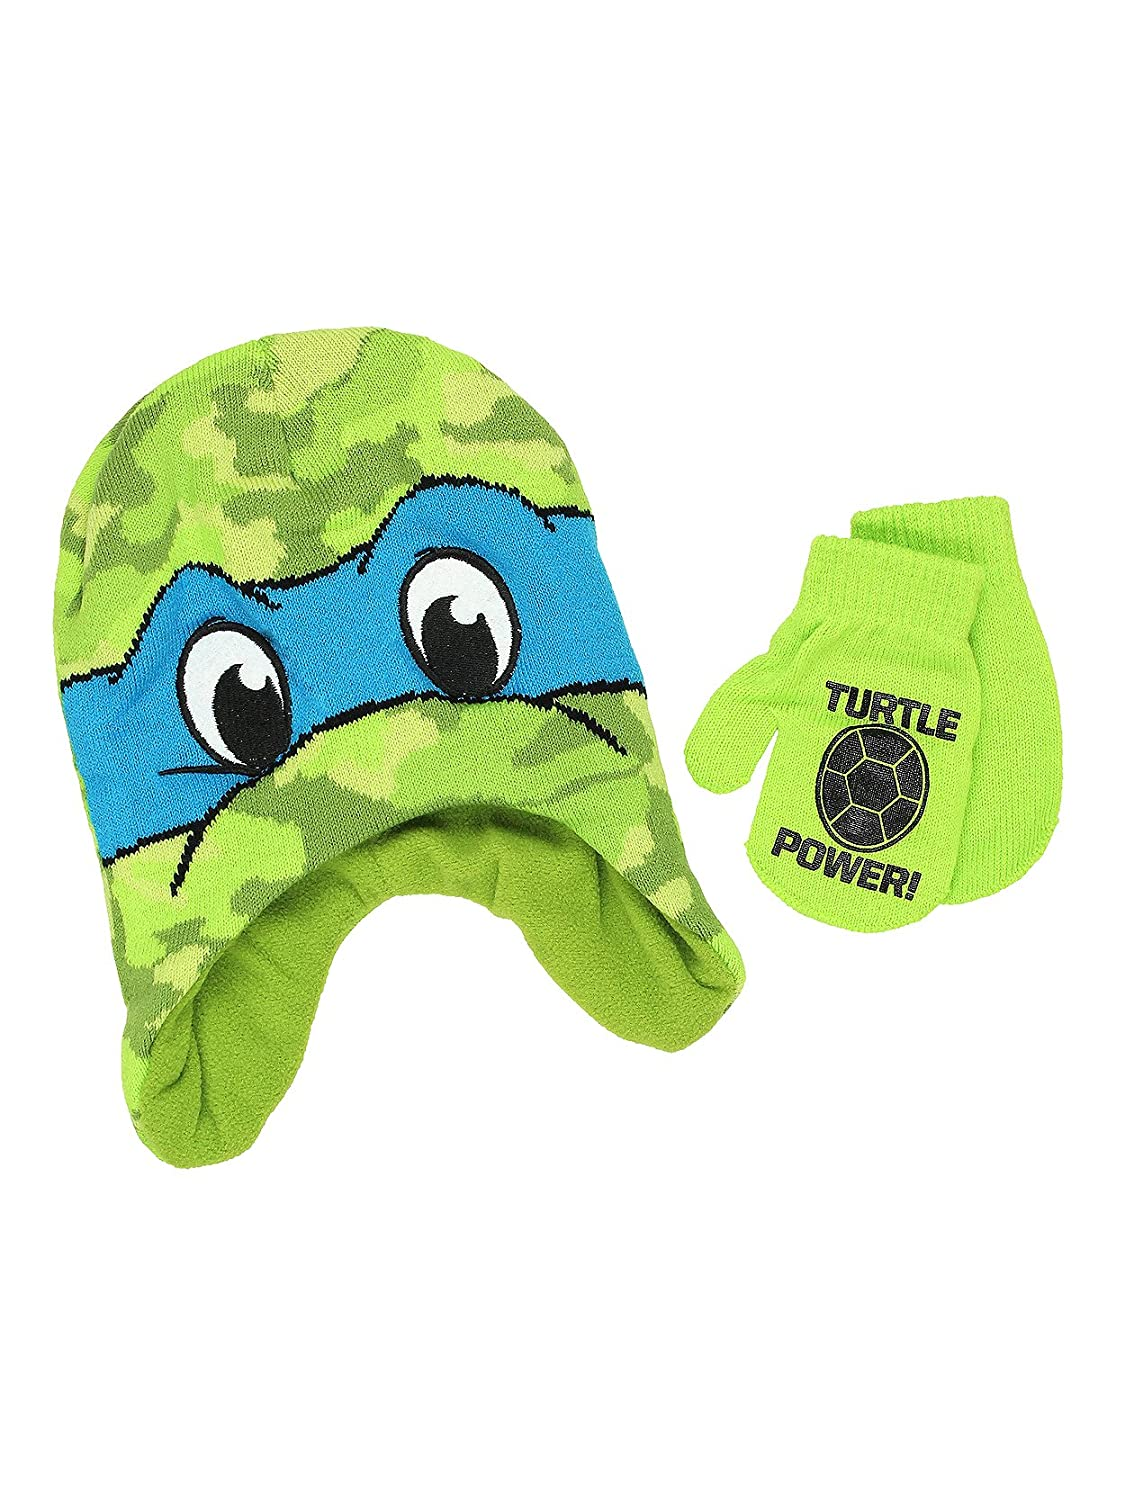 Teenage Mutant Ninja Turtles Boys Beanie Hat and Mittens Set (One Size) manufacturer